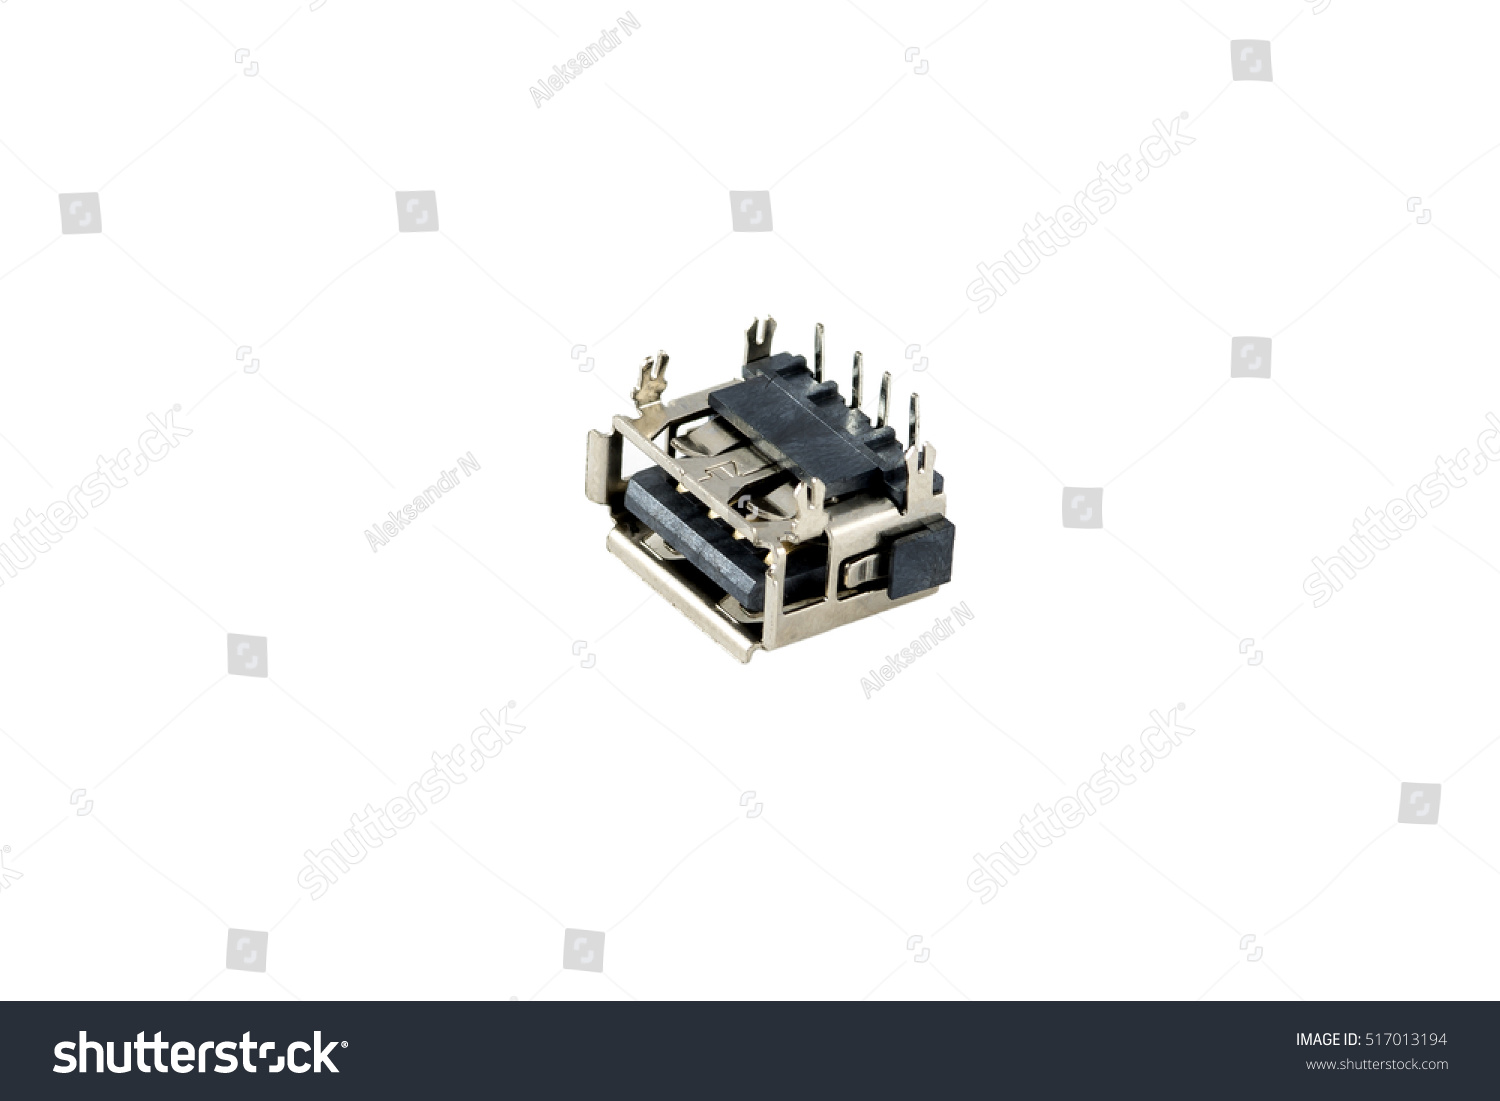 hight resolution of usb connector chip computer port is isolated on a white background